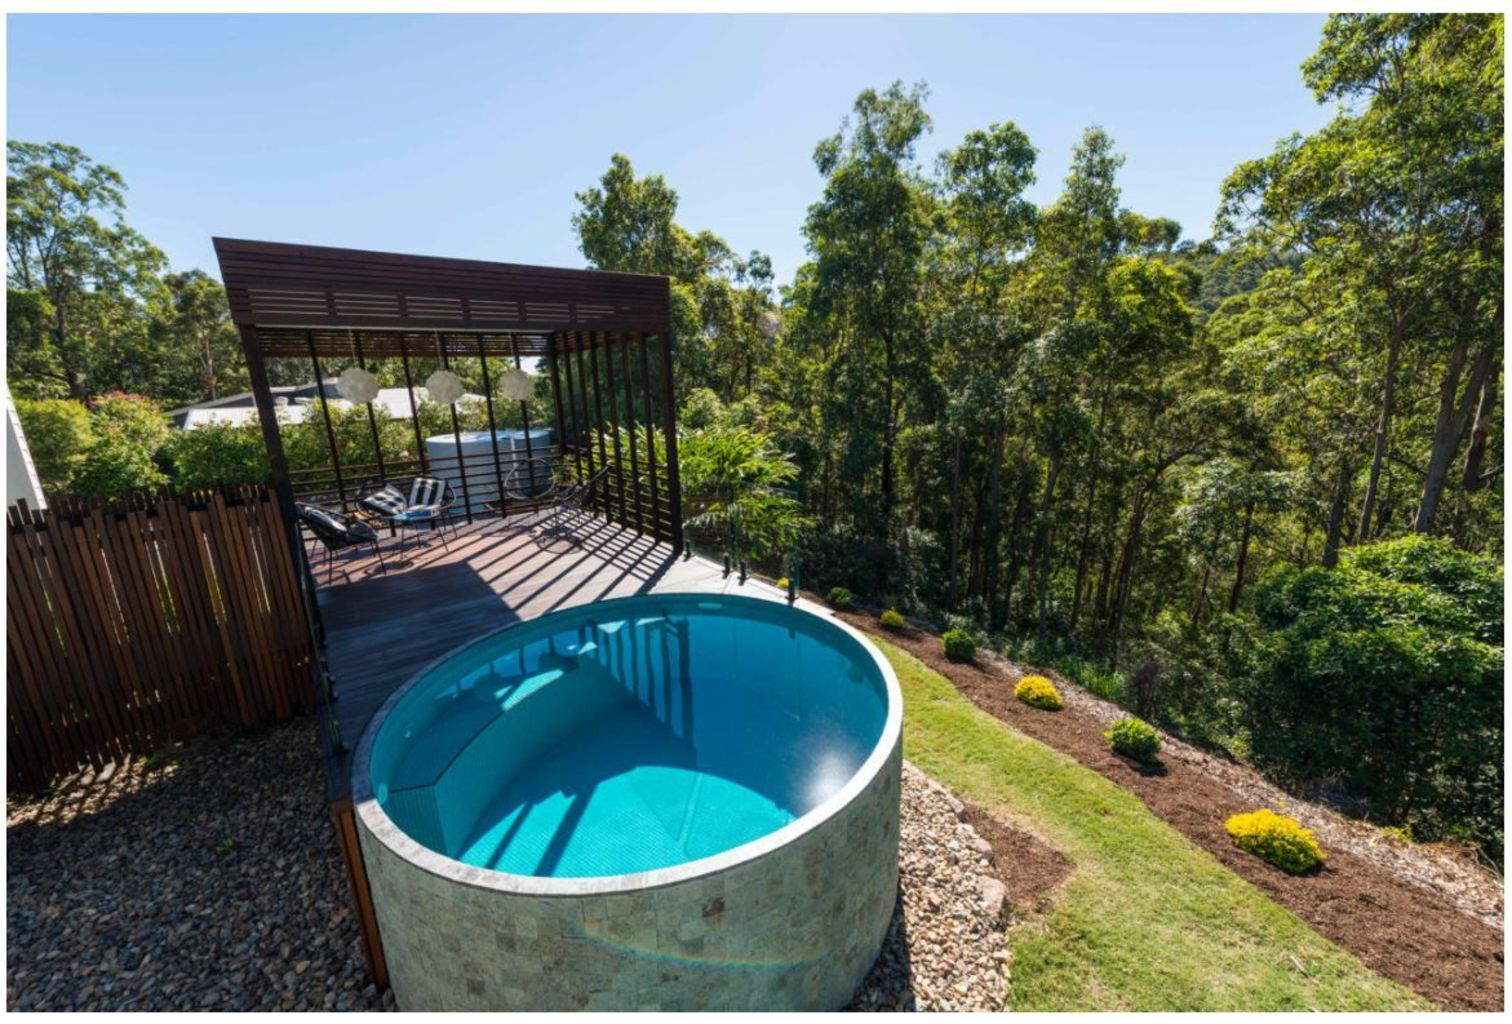 Small swimming pools made for small spaces and tight budgets Part 29